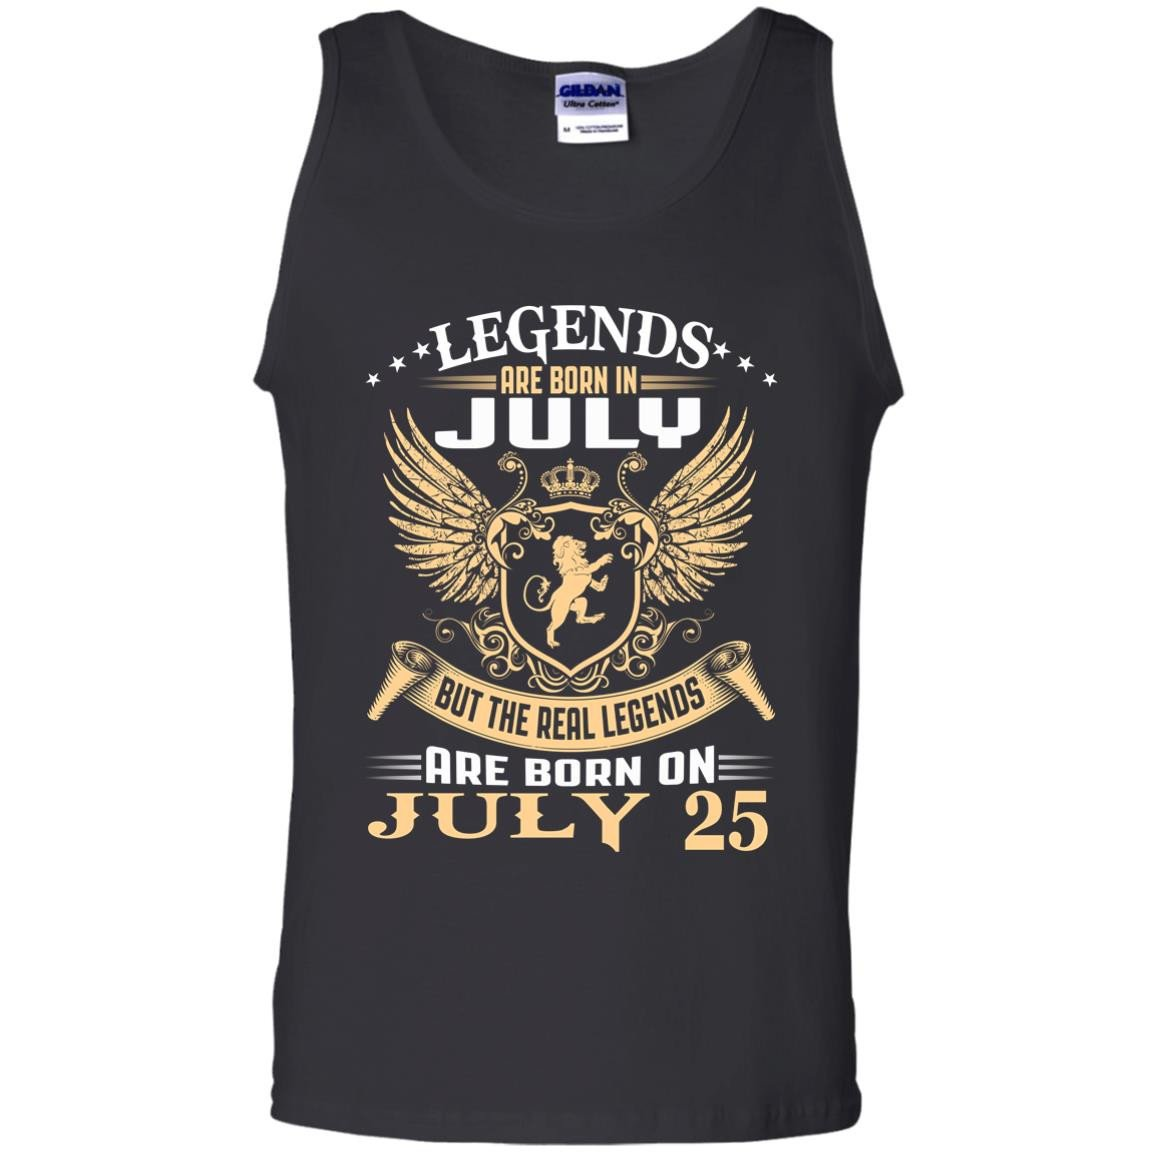 1007 The real kings legends are born on july 25 Tank top